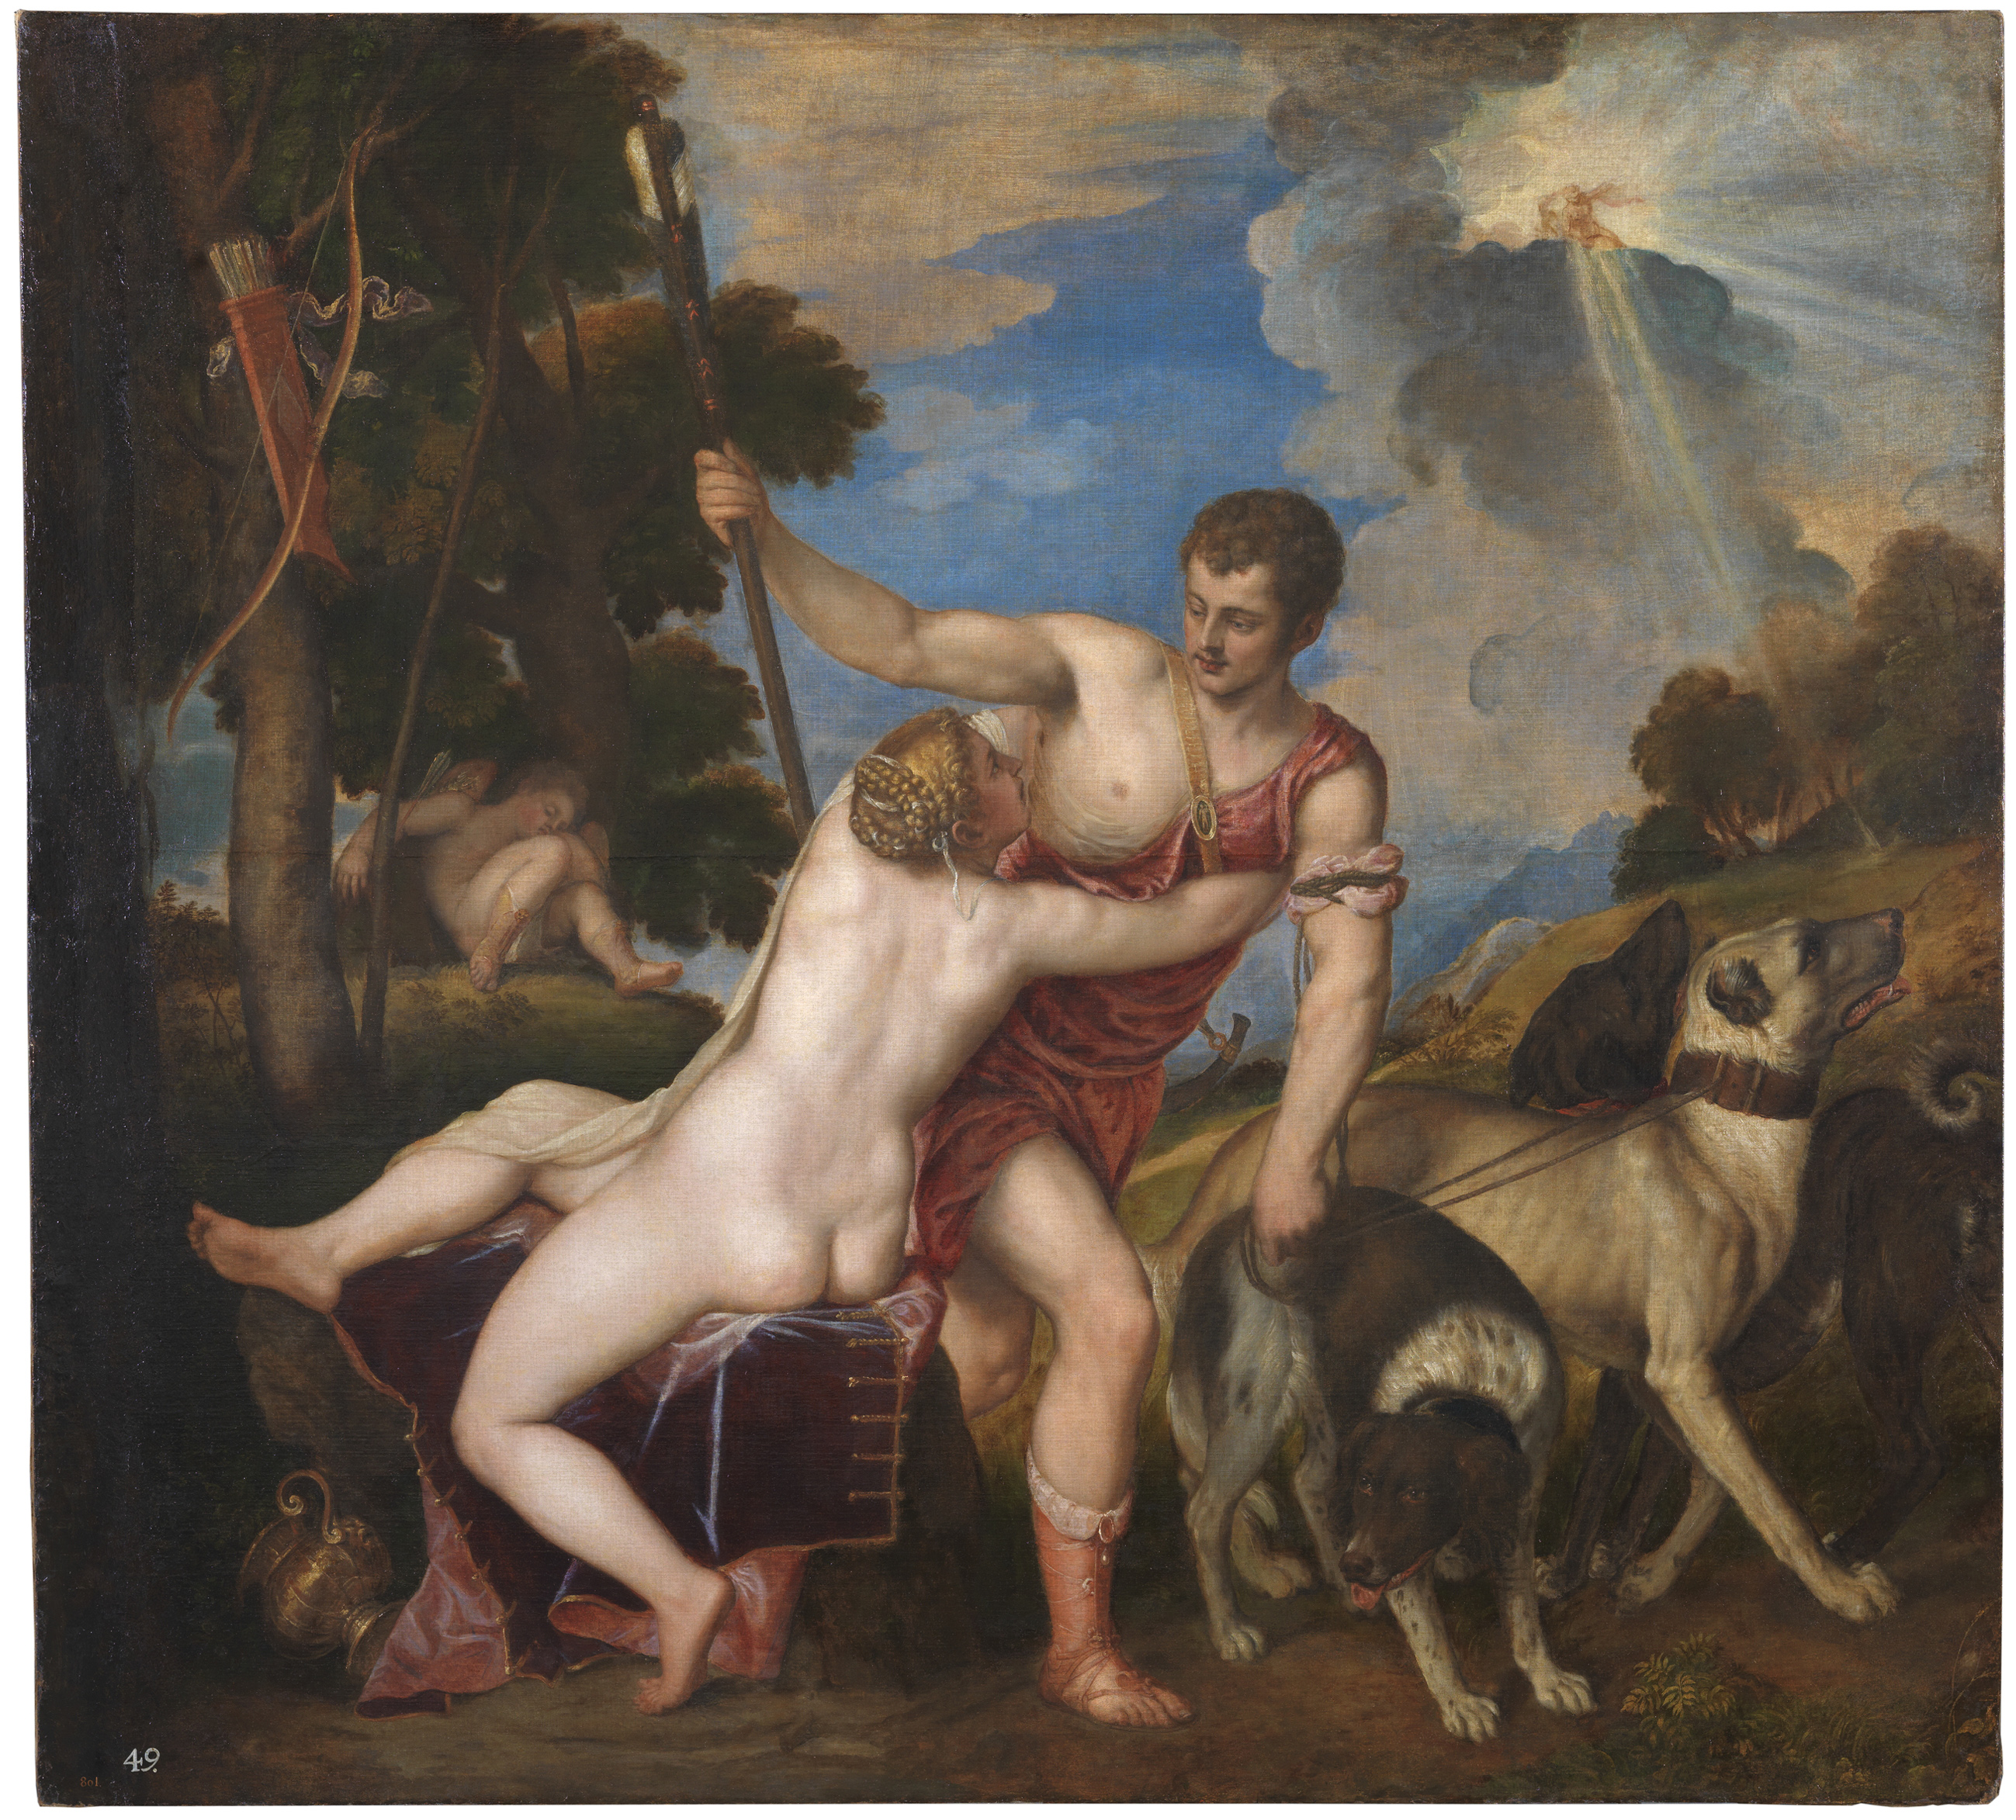 Venus and Adonis (1554) by Titian